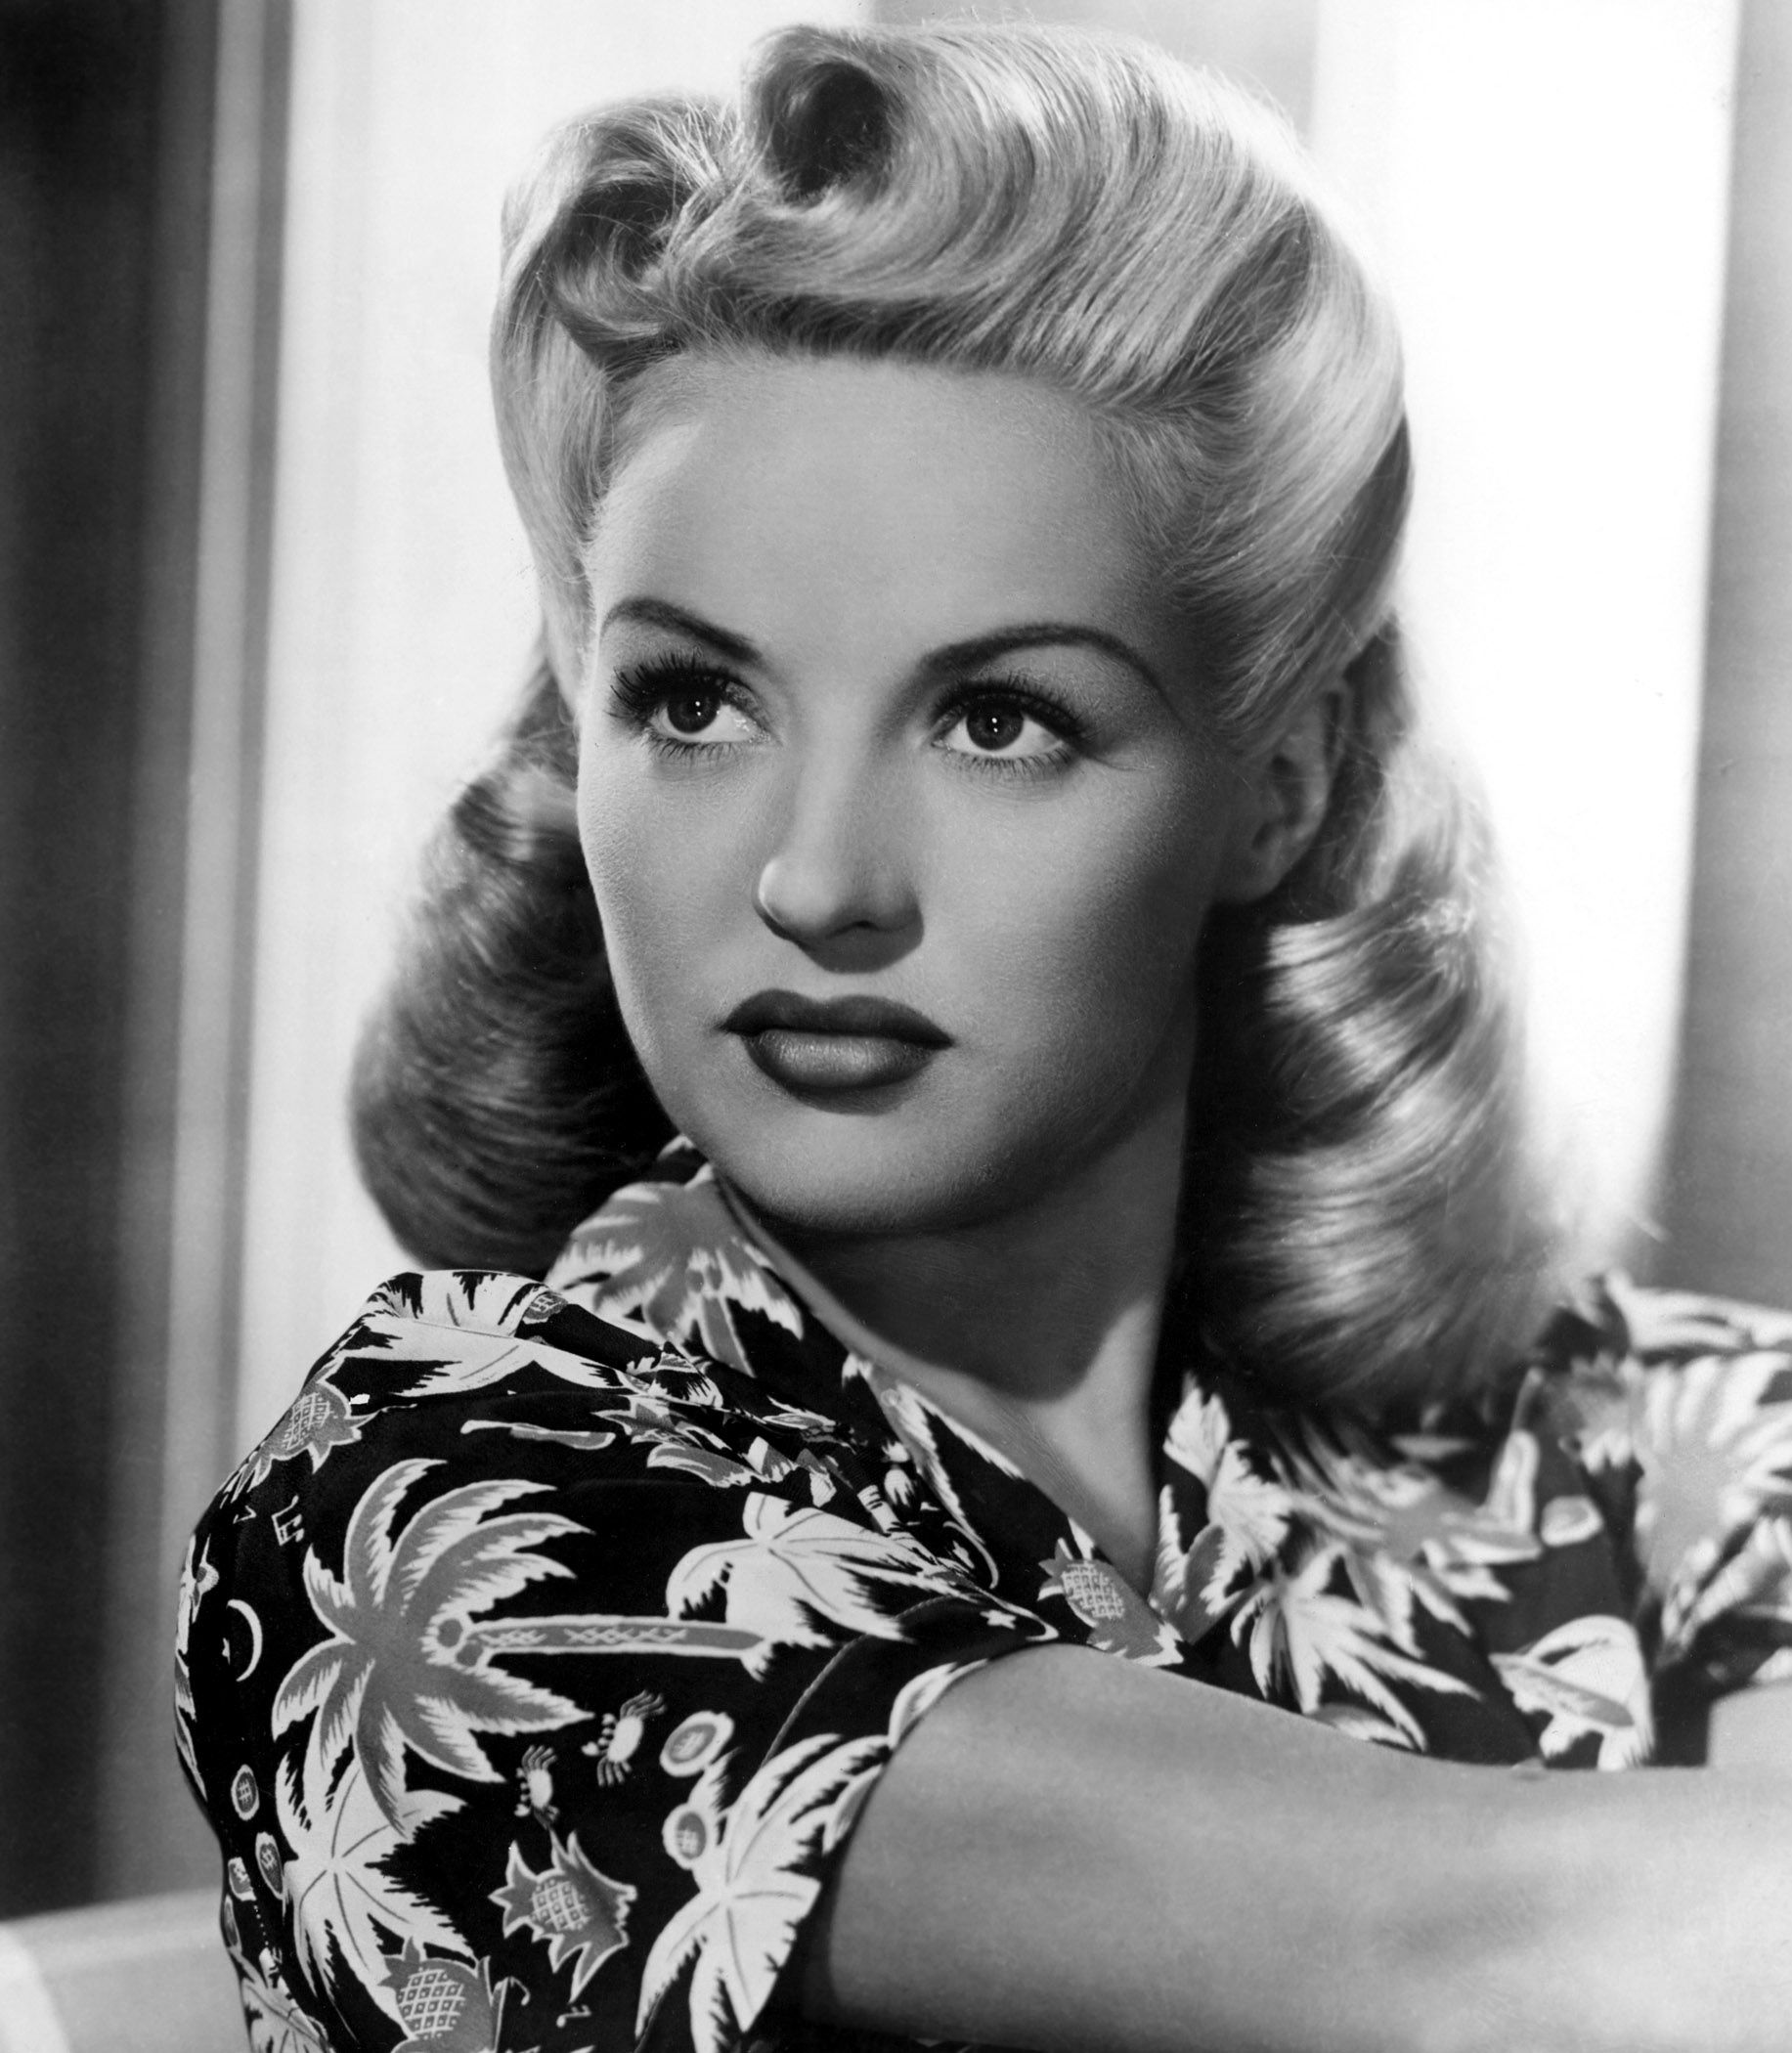 "Betty Grable - The Darling of the Fourties She was only 5'4"" and managed to look good in many different cuts of clothing, including long skirts and high-waisted shorts. #ModCloth #StyleIcon"